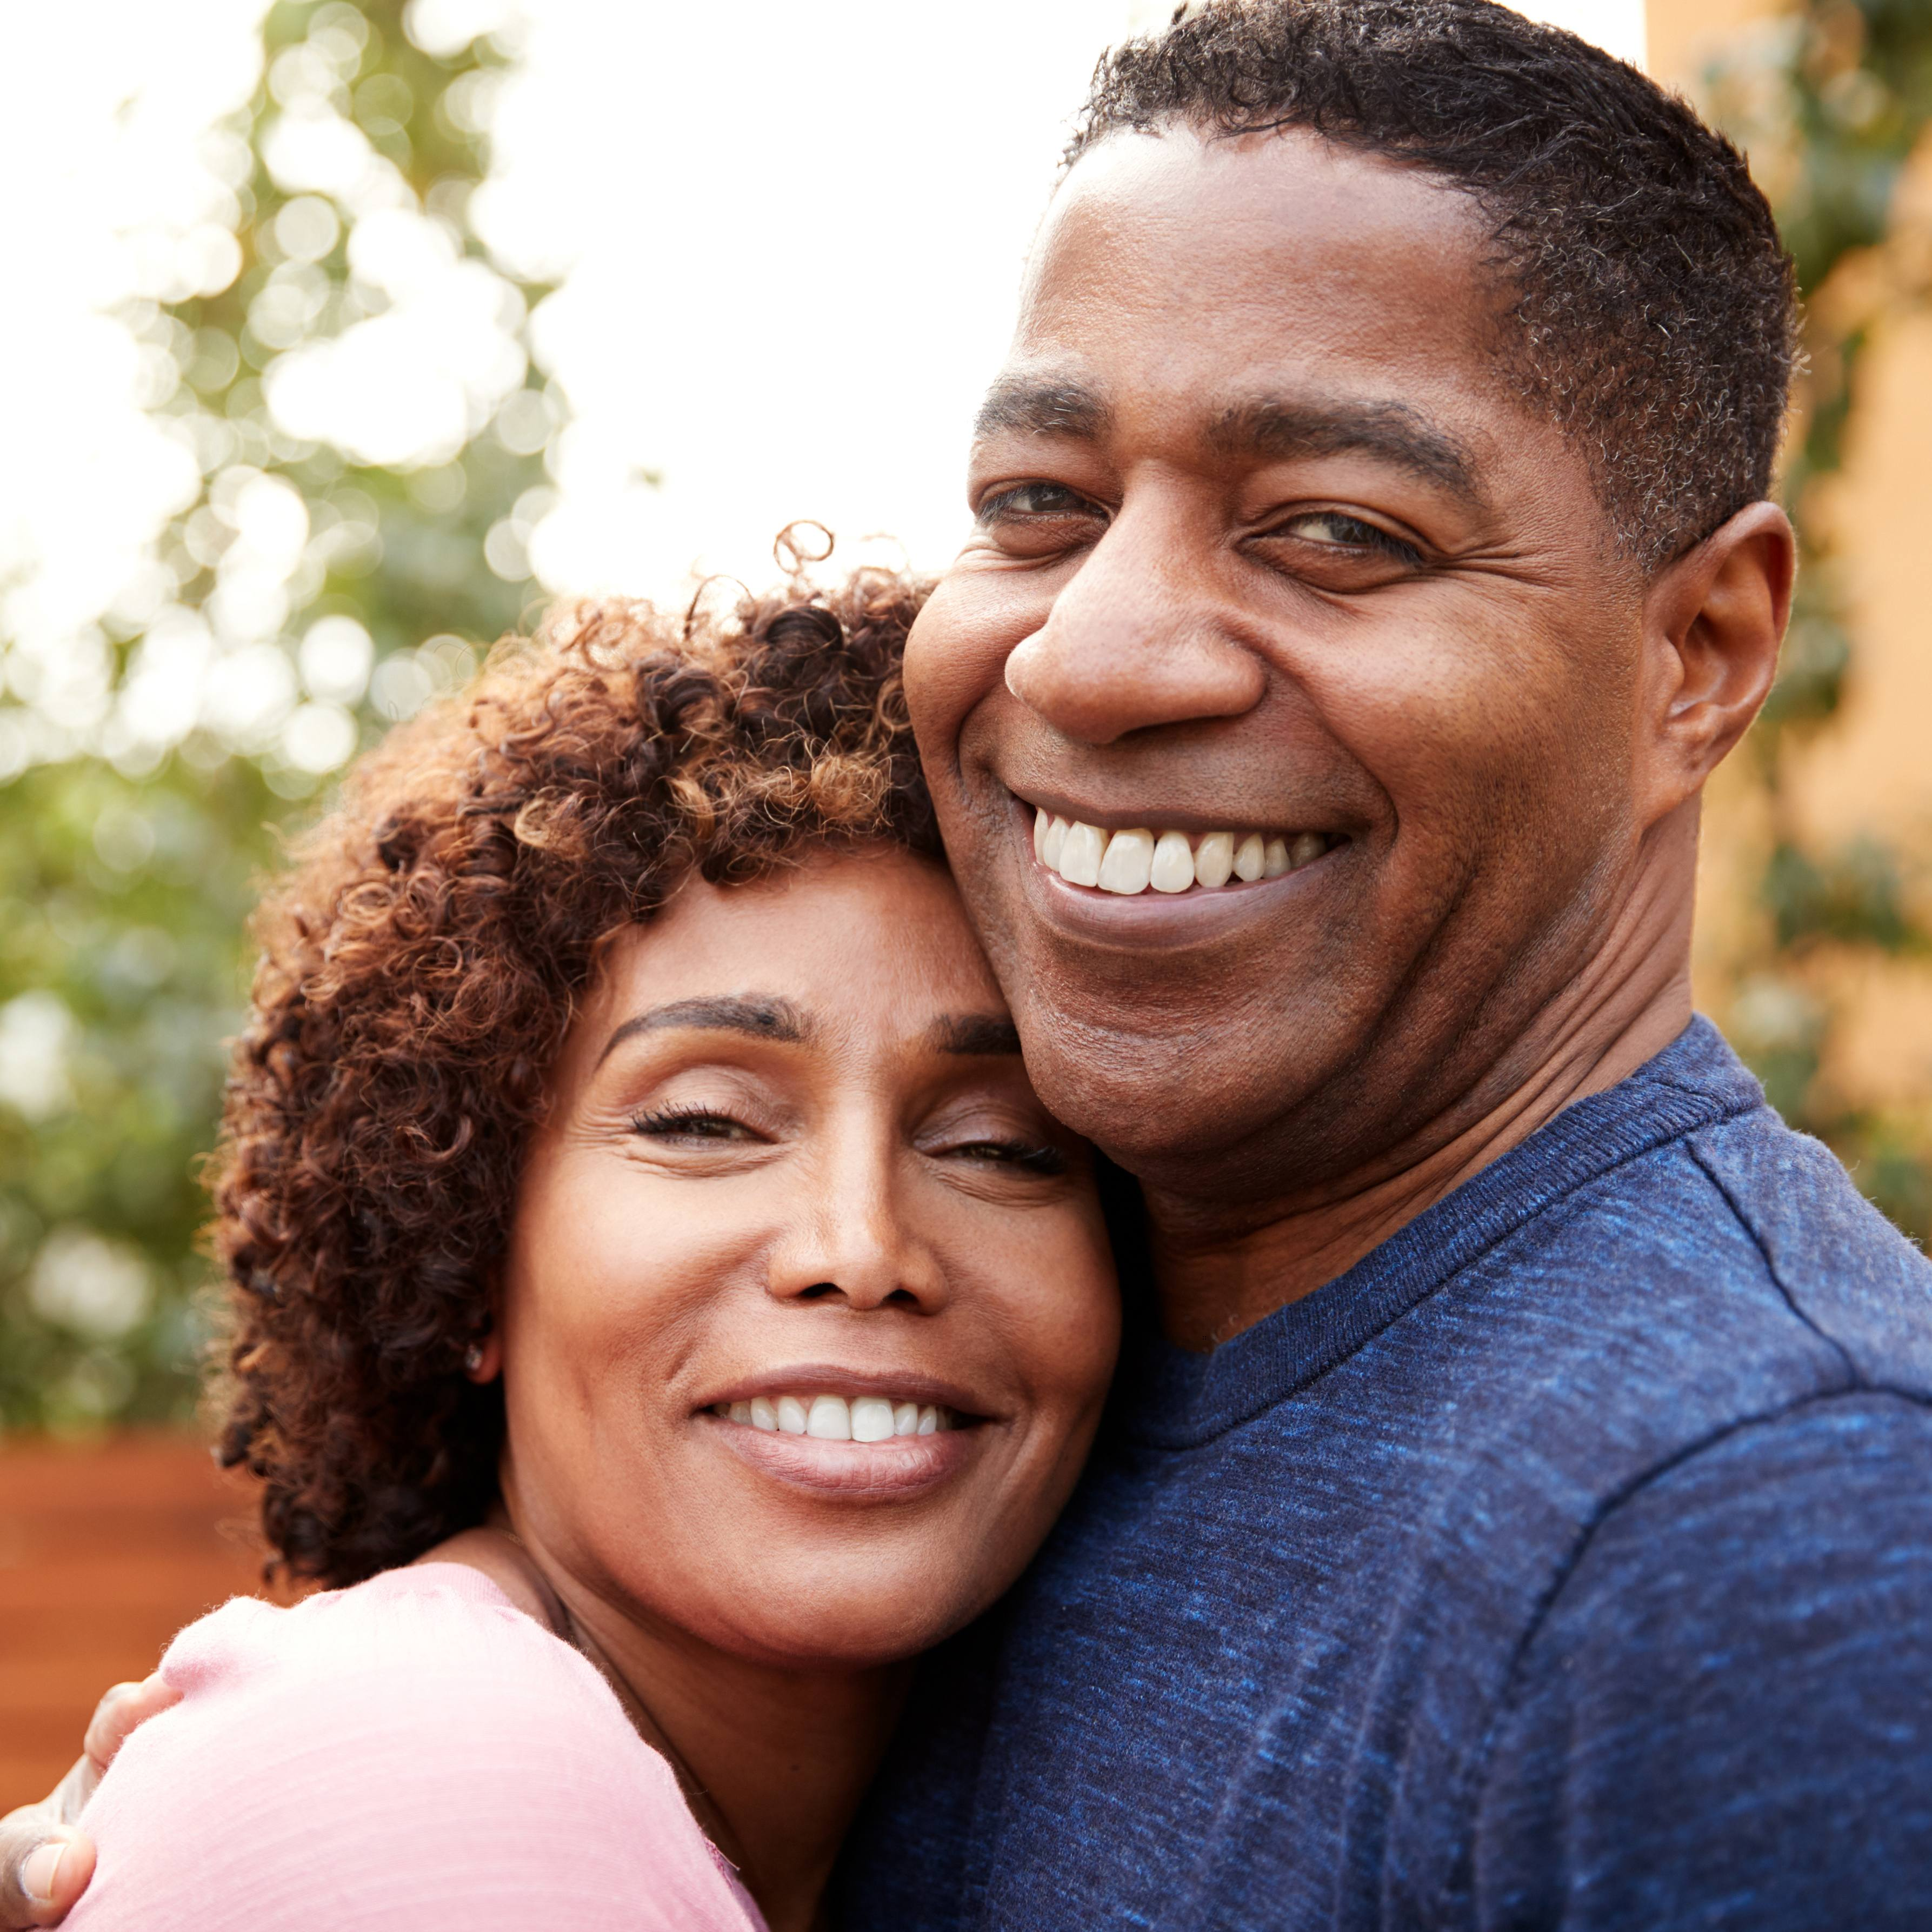 a smiling middle-aged couple outdoors on a sunny day, embracing